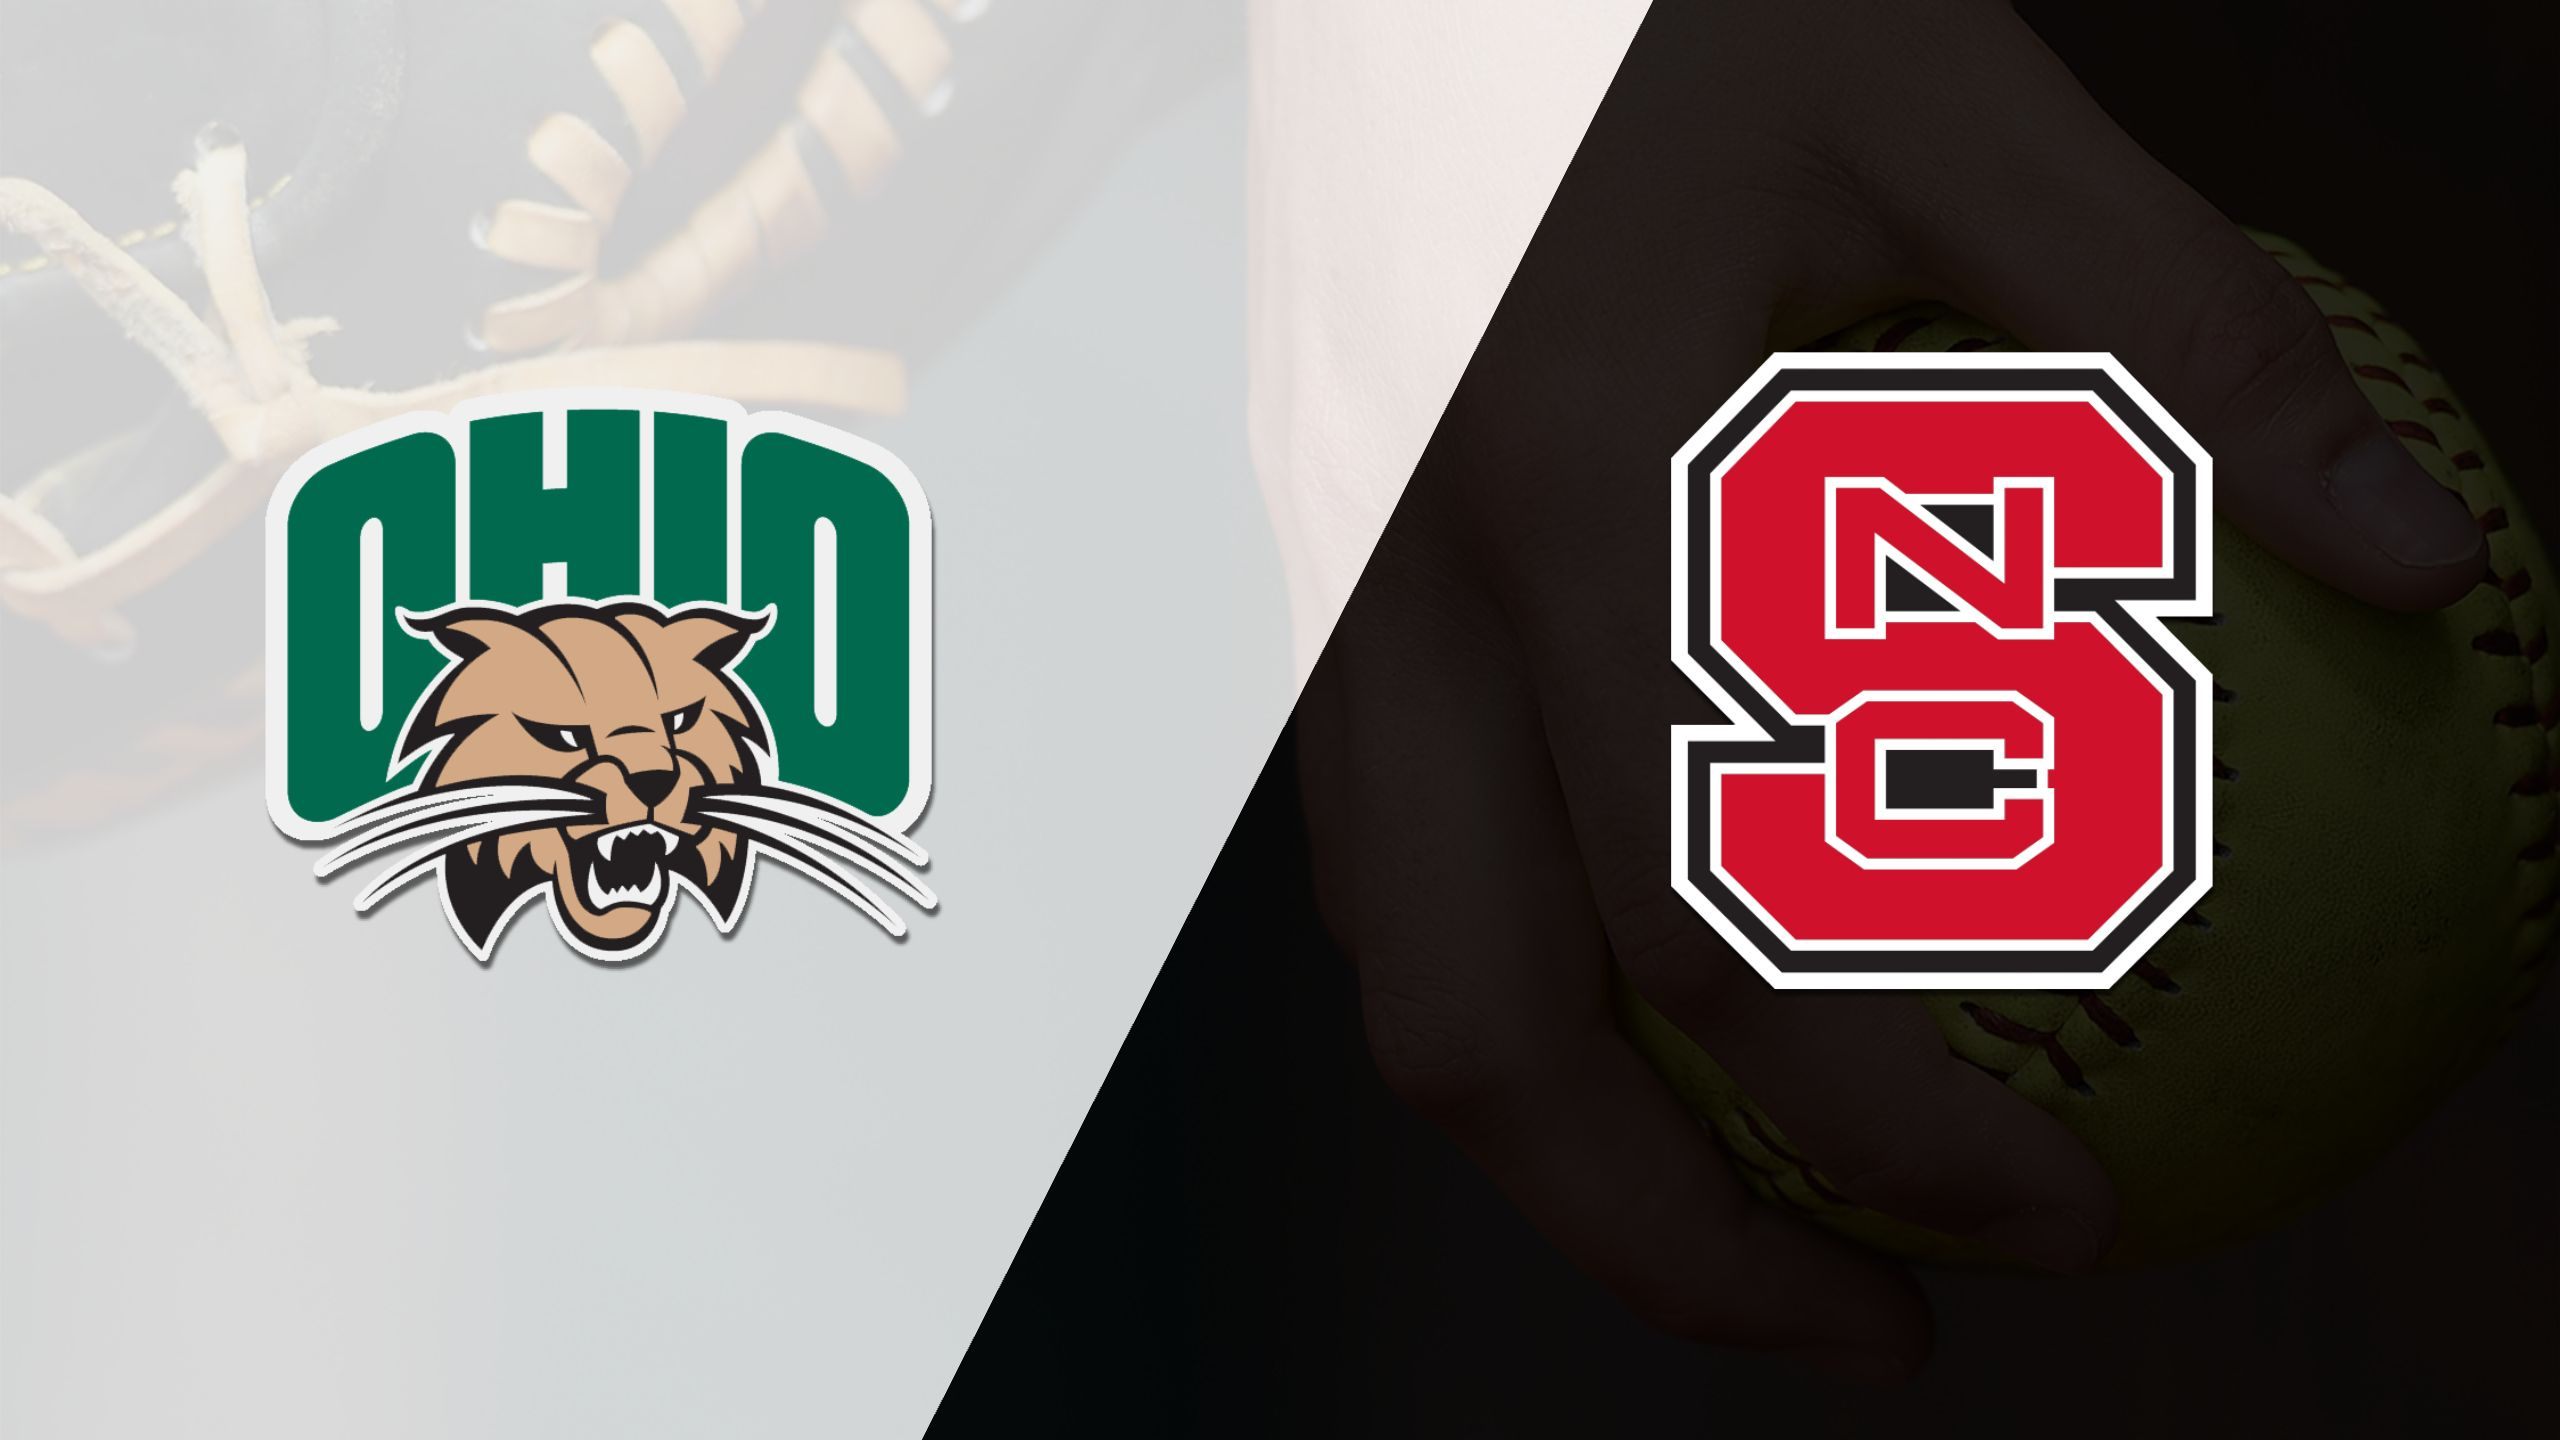 Ohio vs. NC State (Softball)